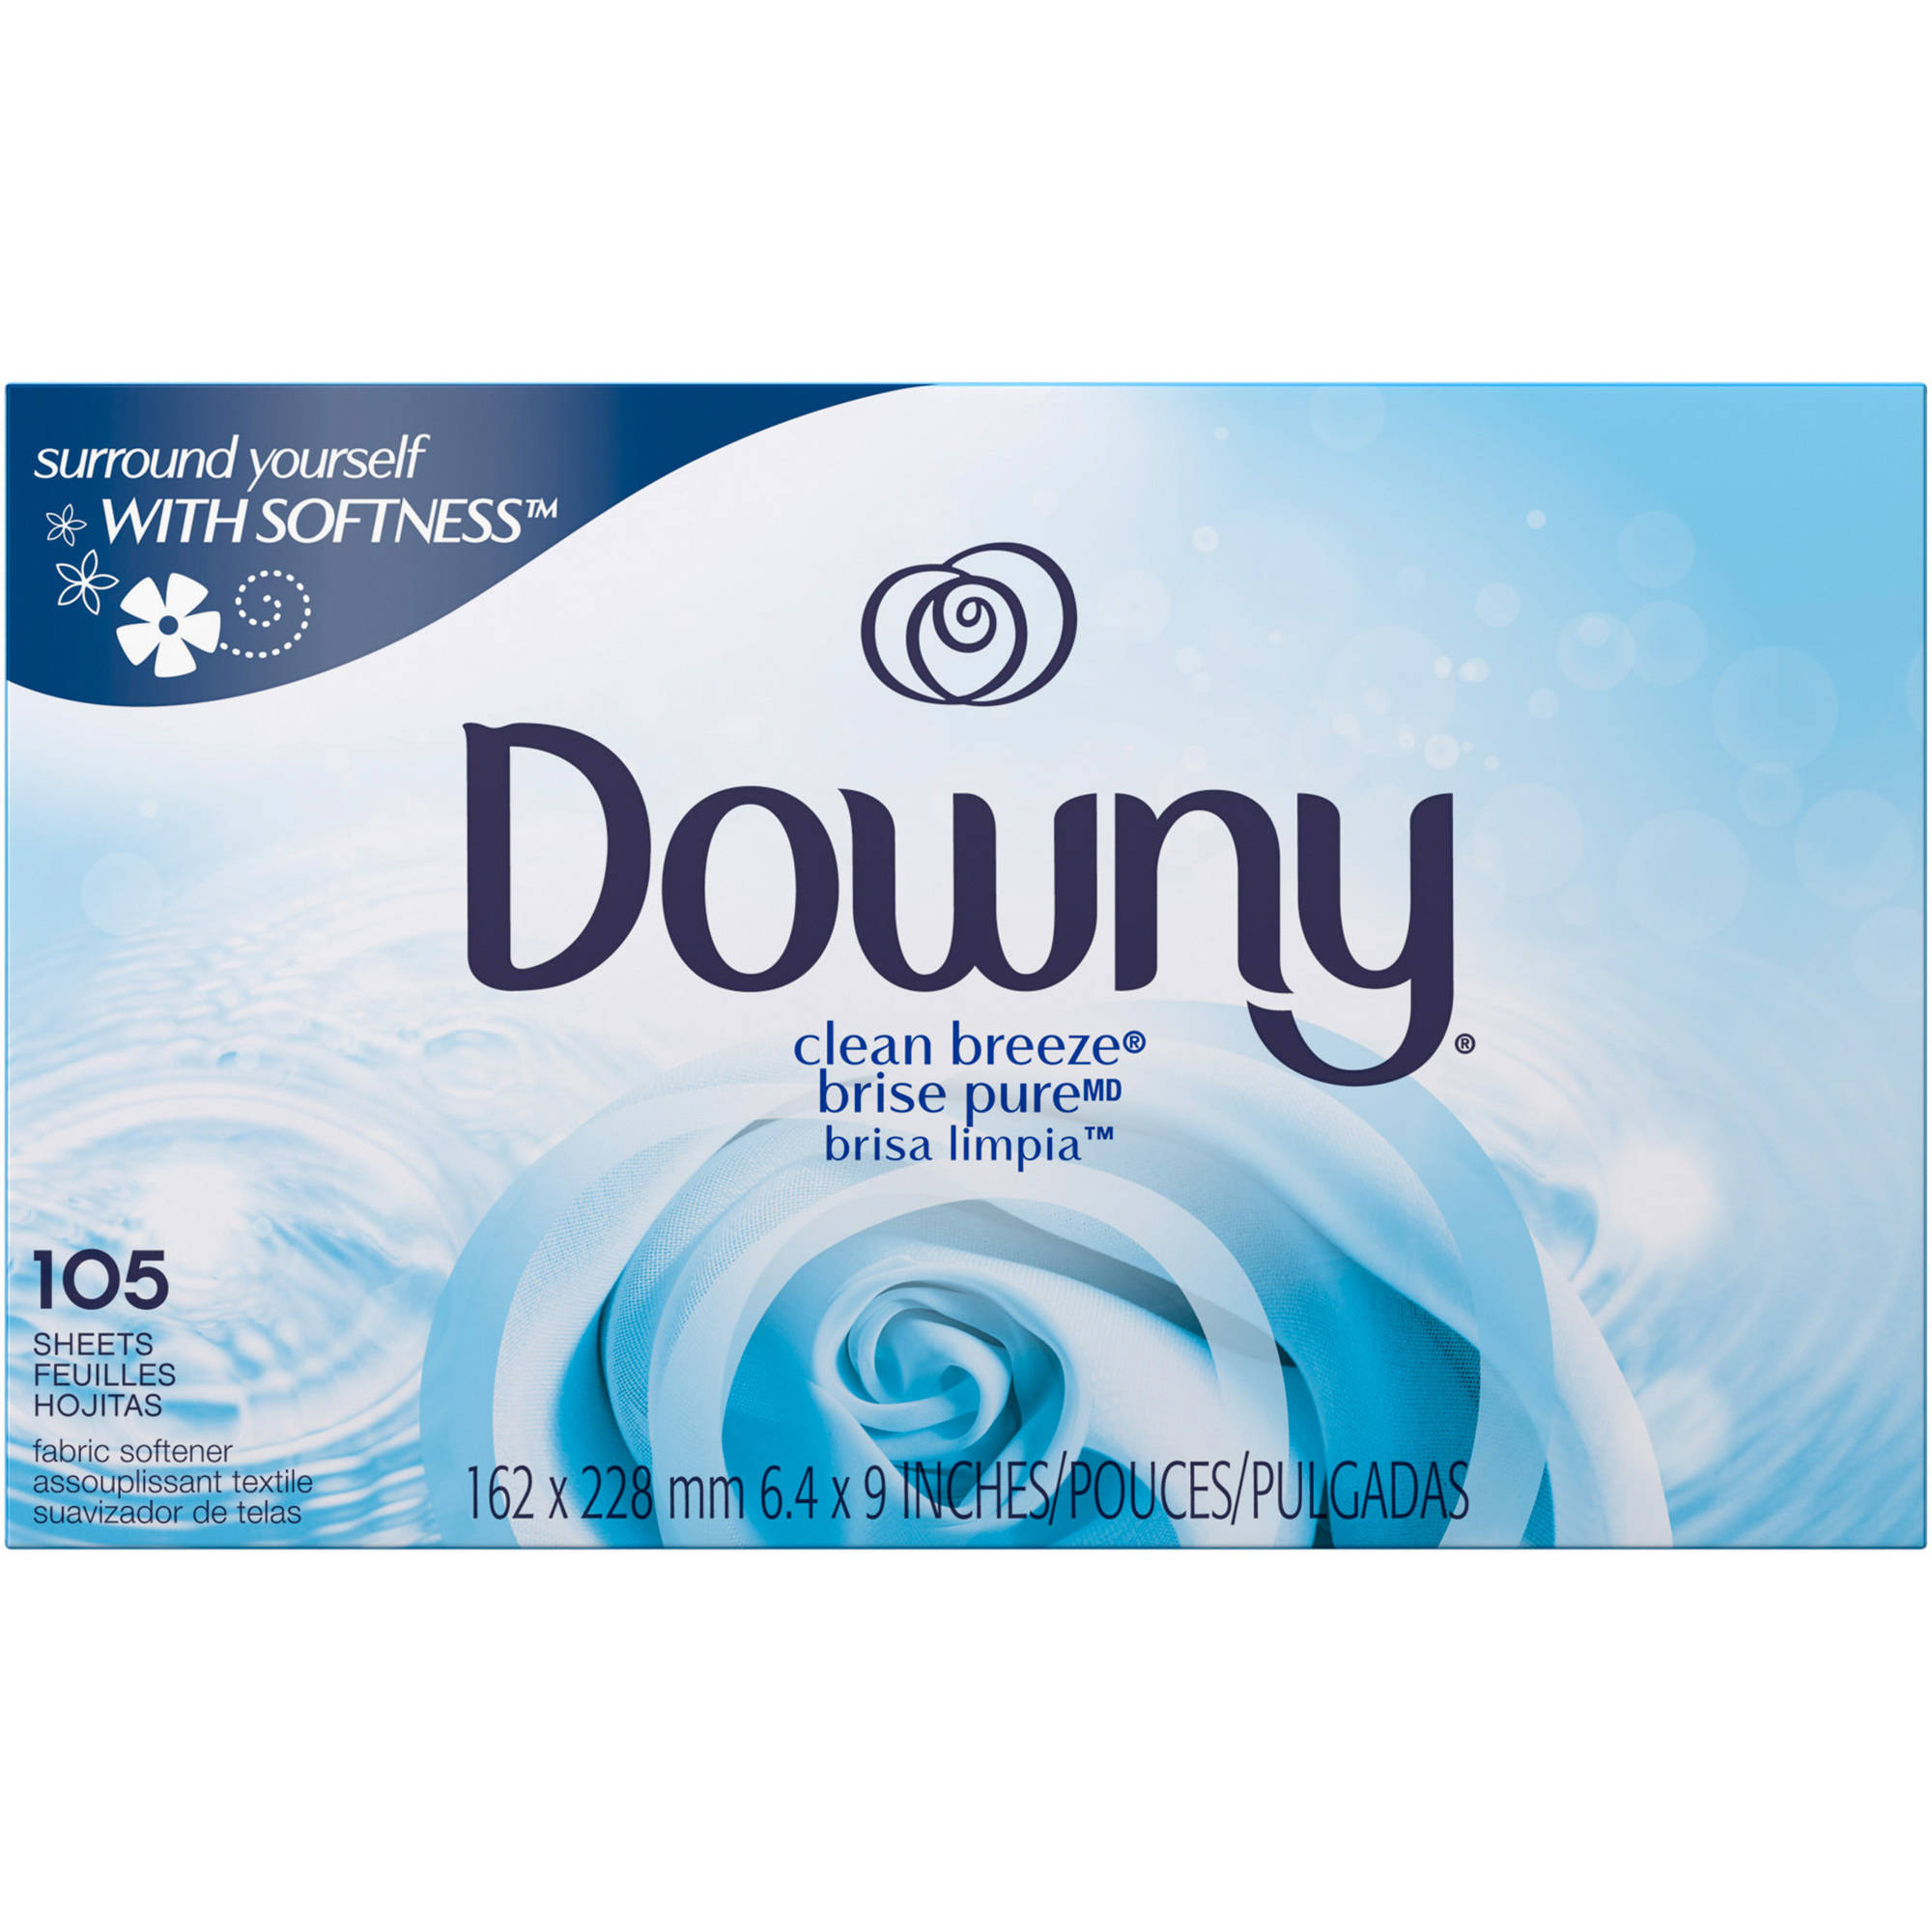 Downy Clean Breeze Fabric Softener Dryer Sheets, 105 count